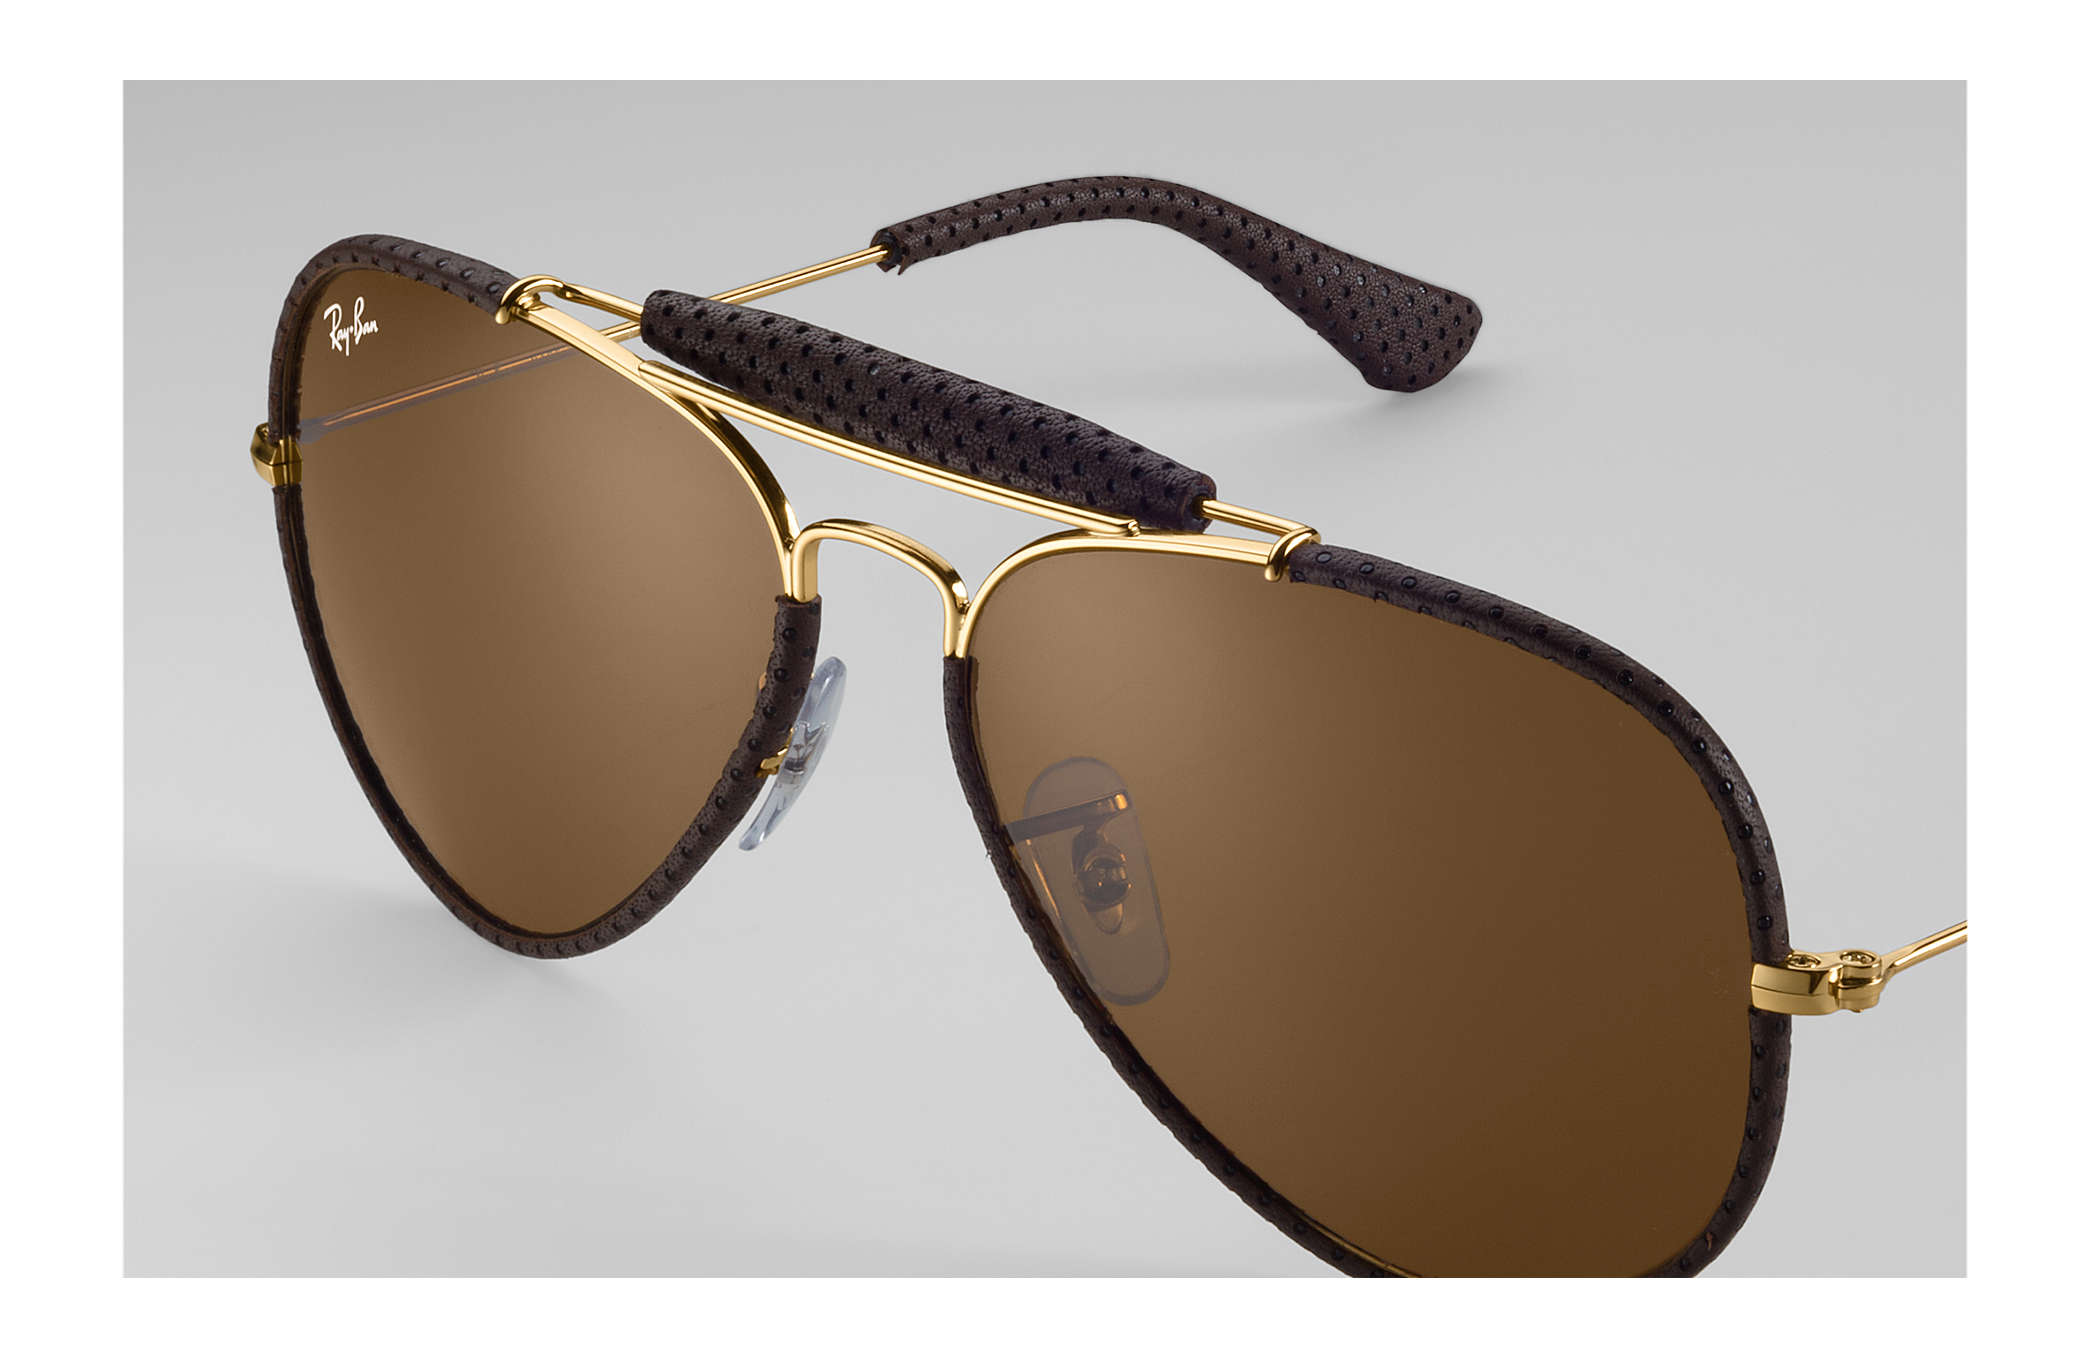 72cc548b1e Ray-Ban Outdoorsman Craft RB3422Q Brown - Metal - Brown Lenses ...